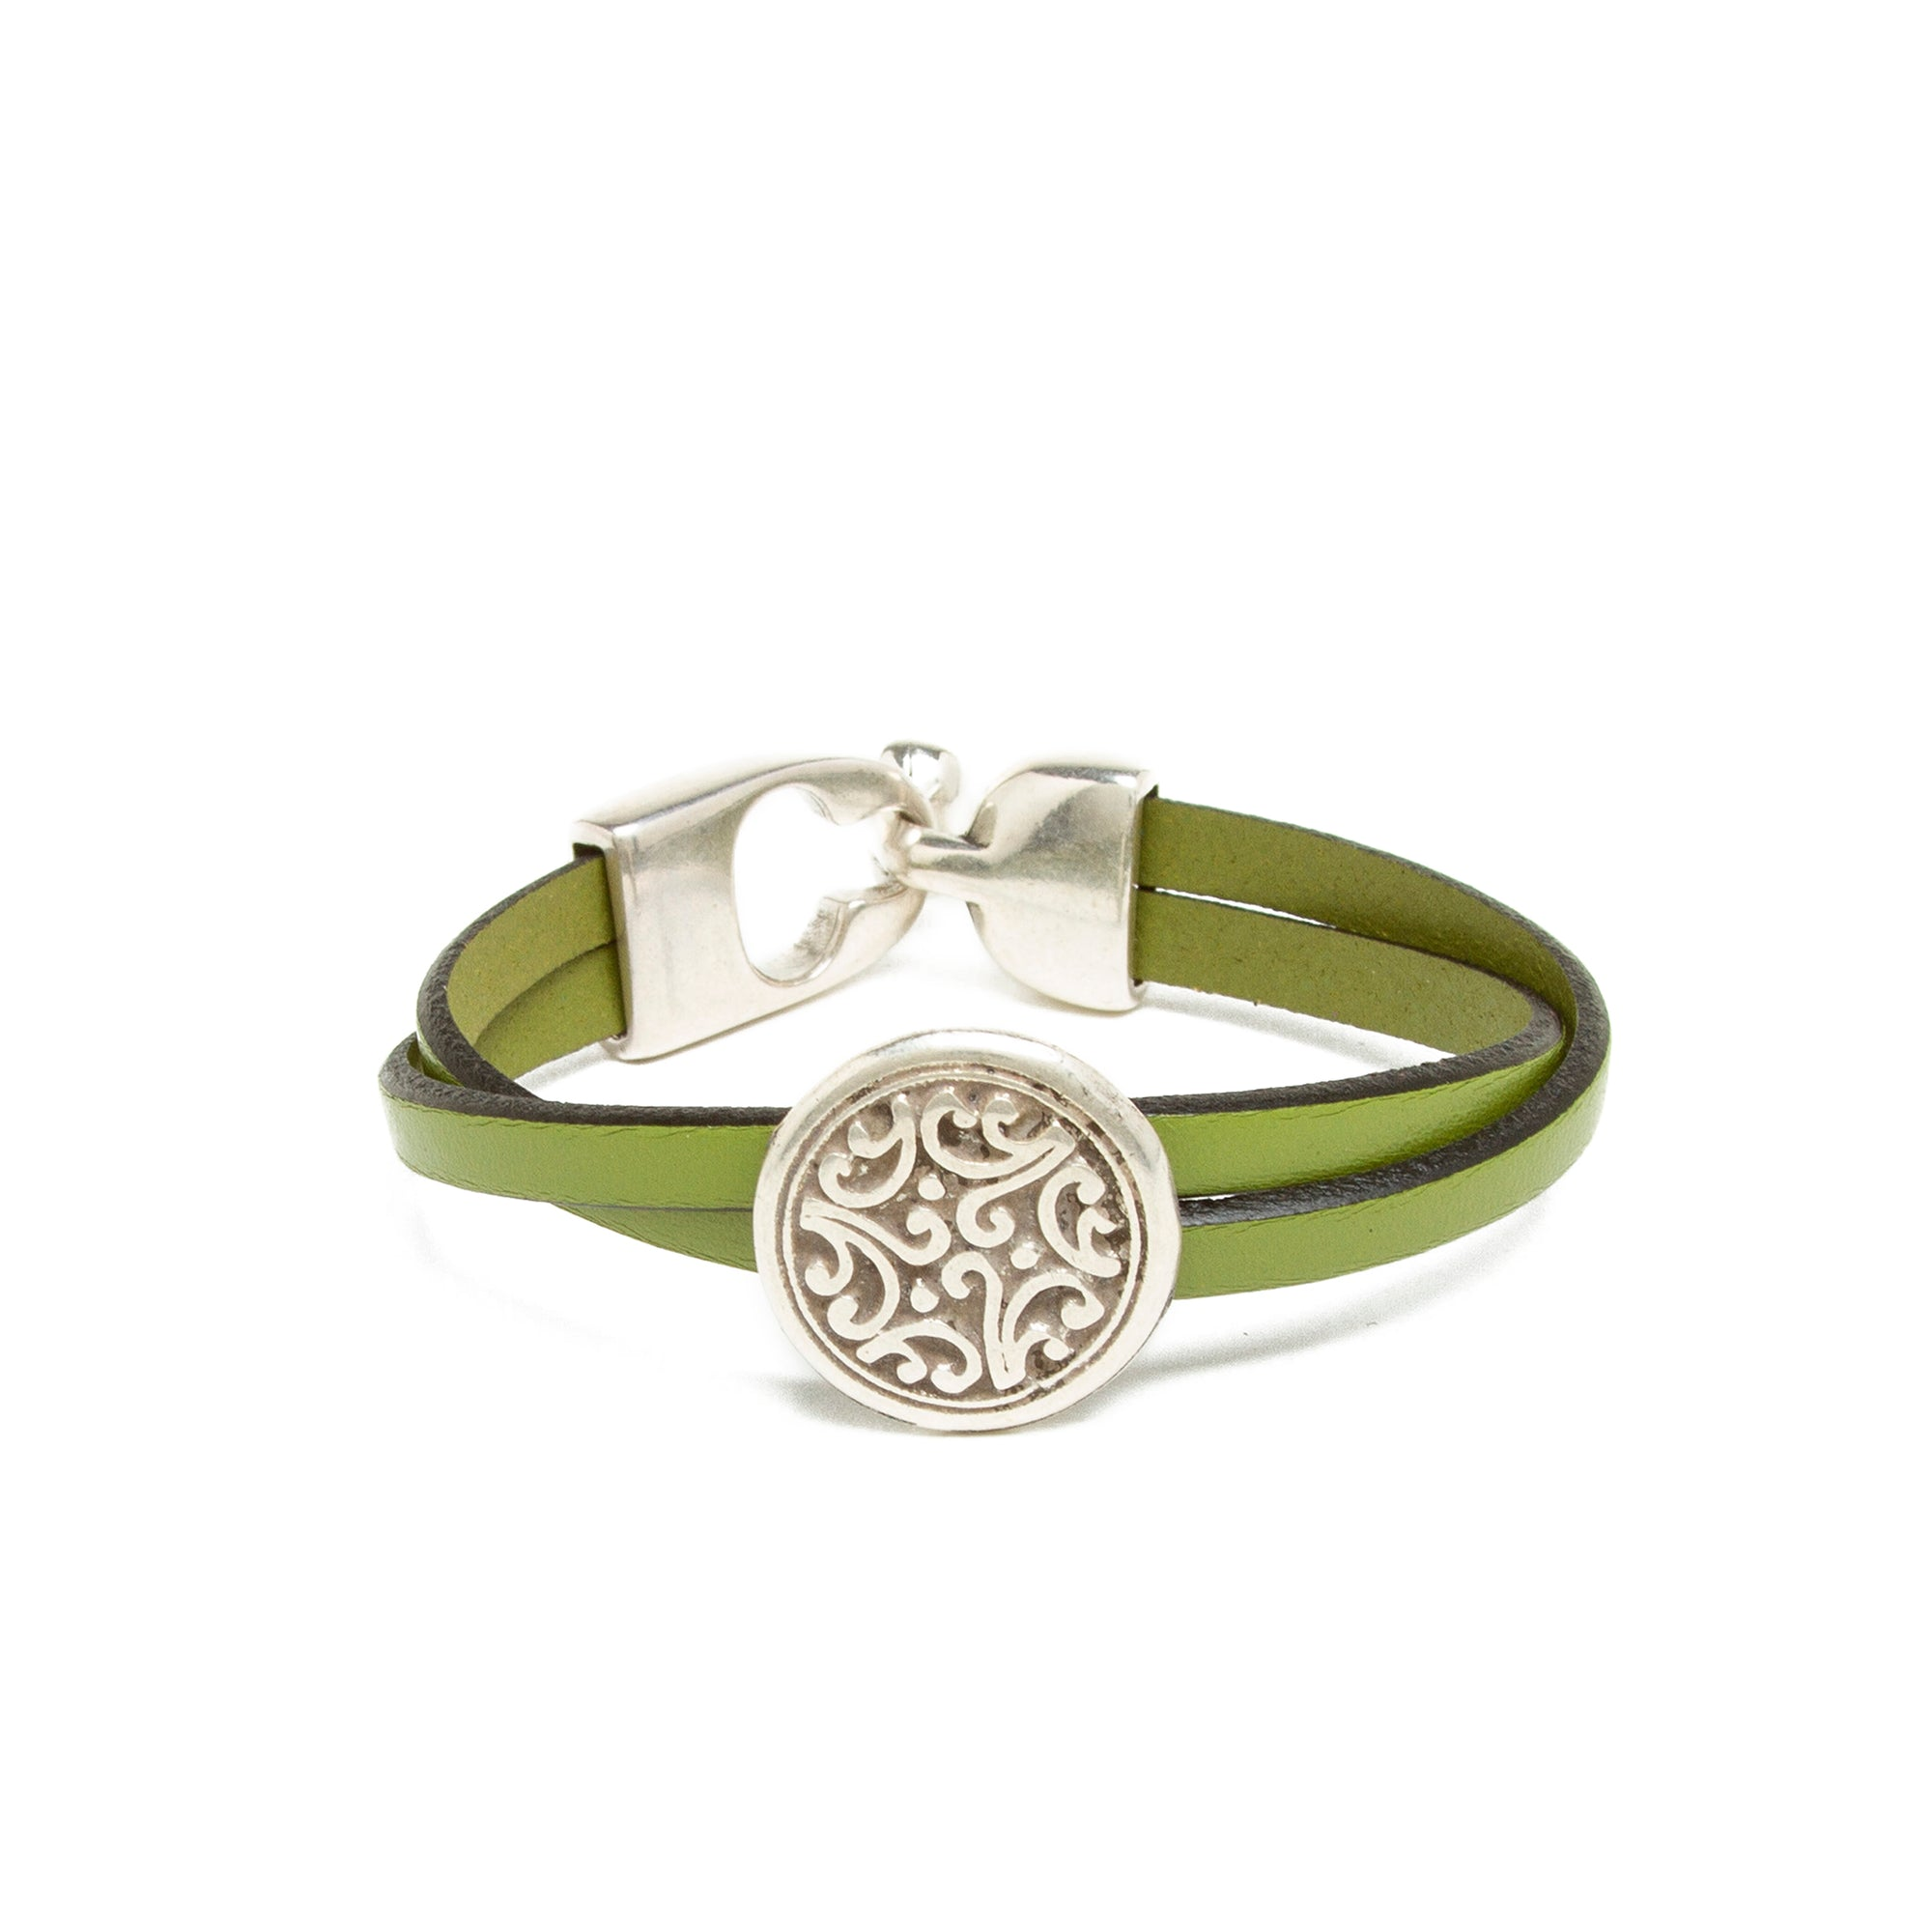 Leather Floral Bead Bracelet - Green